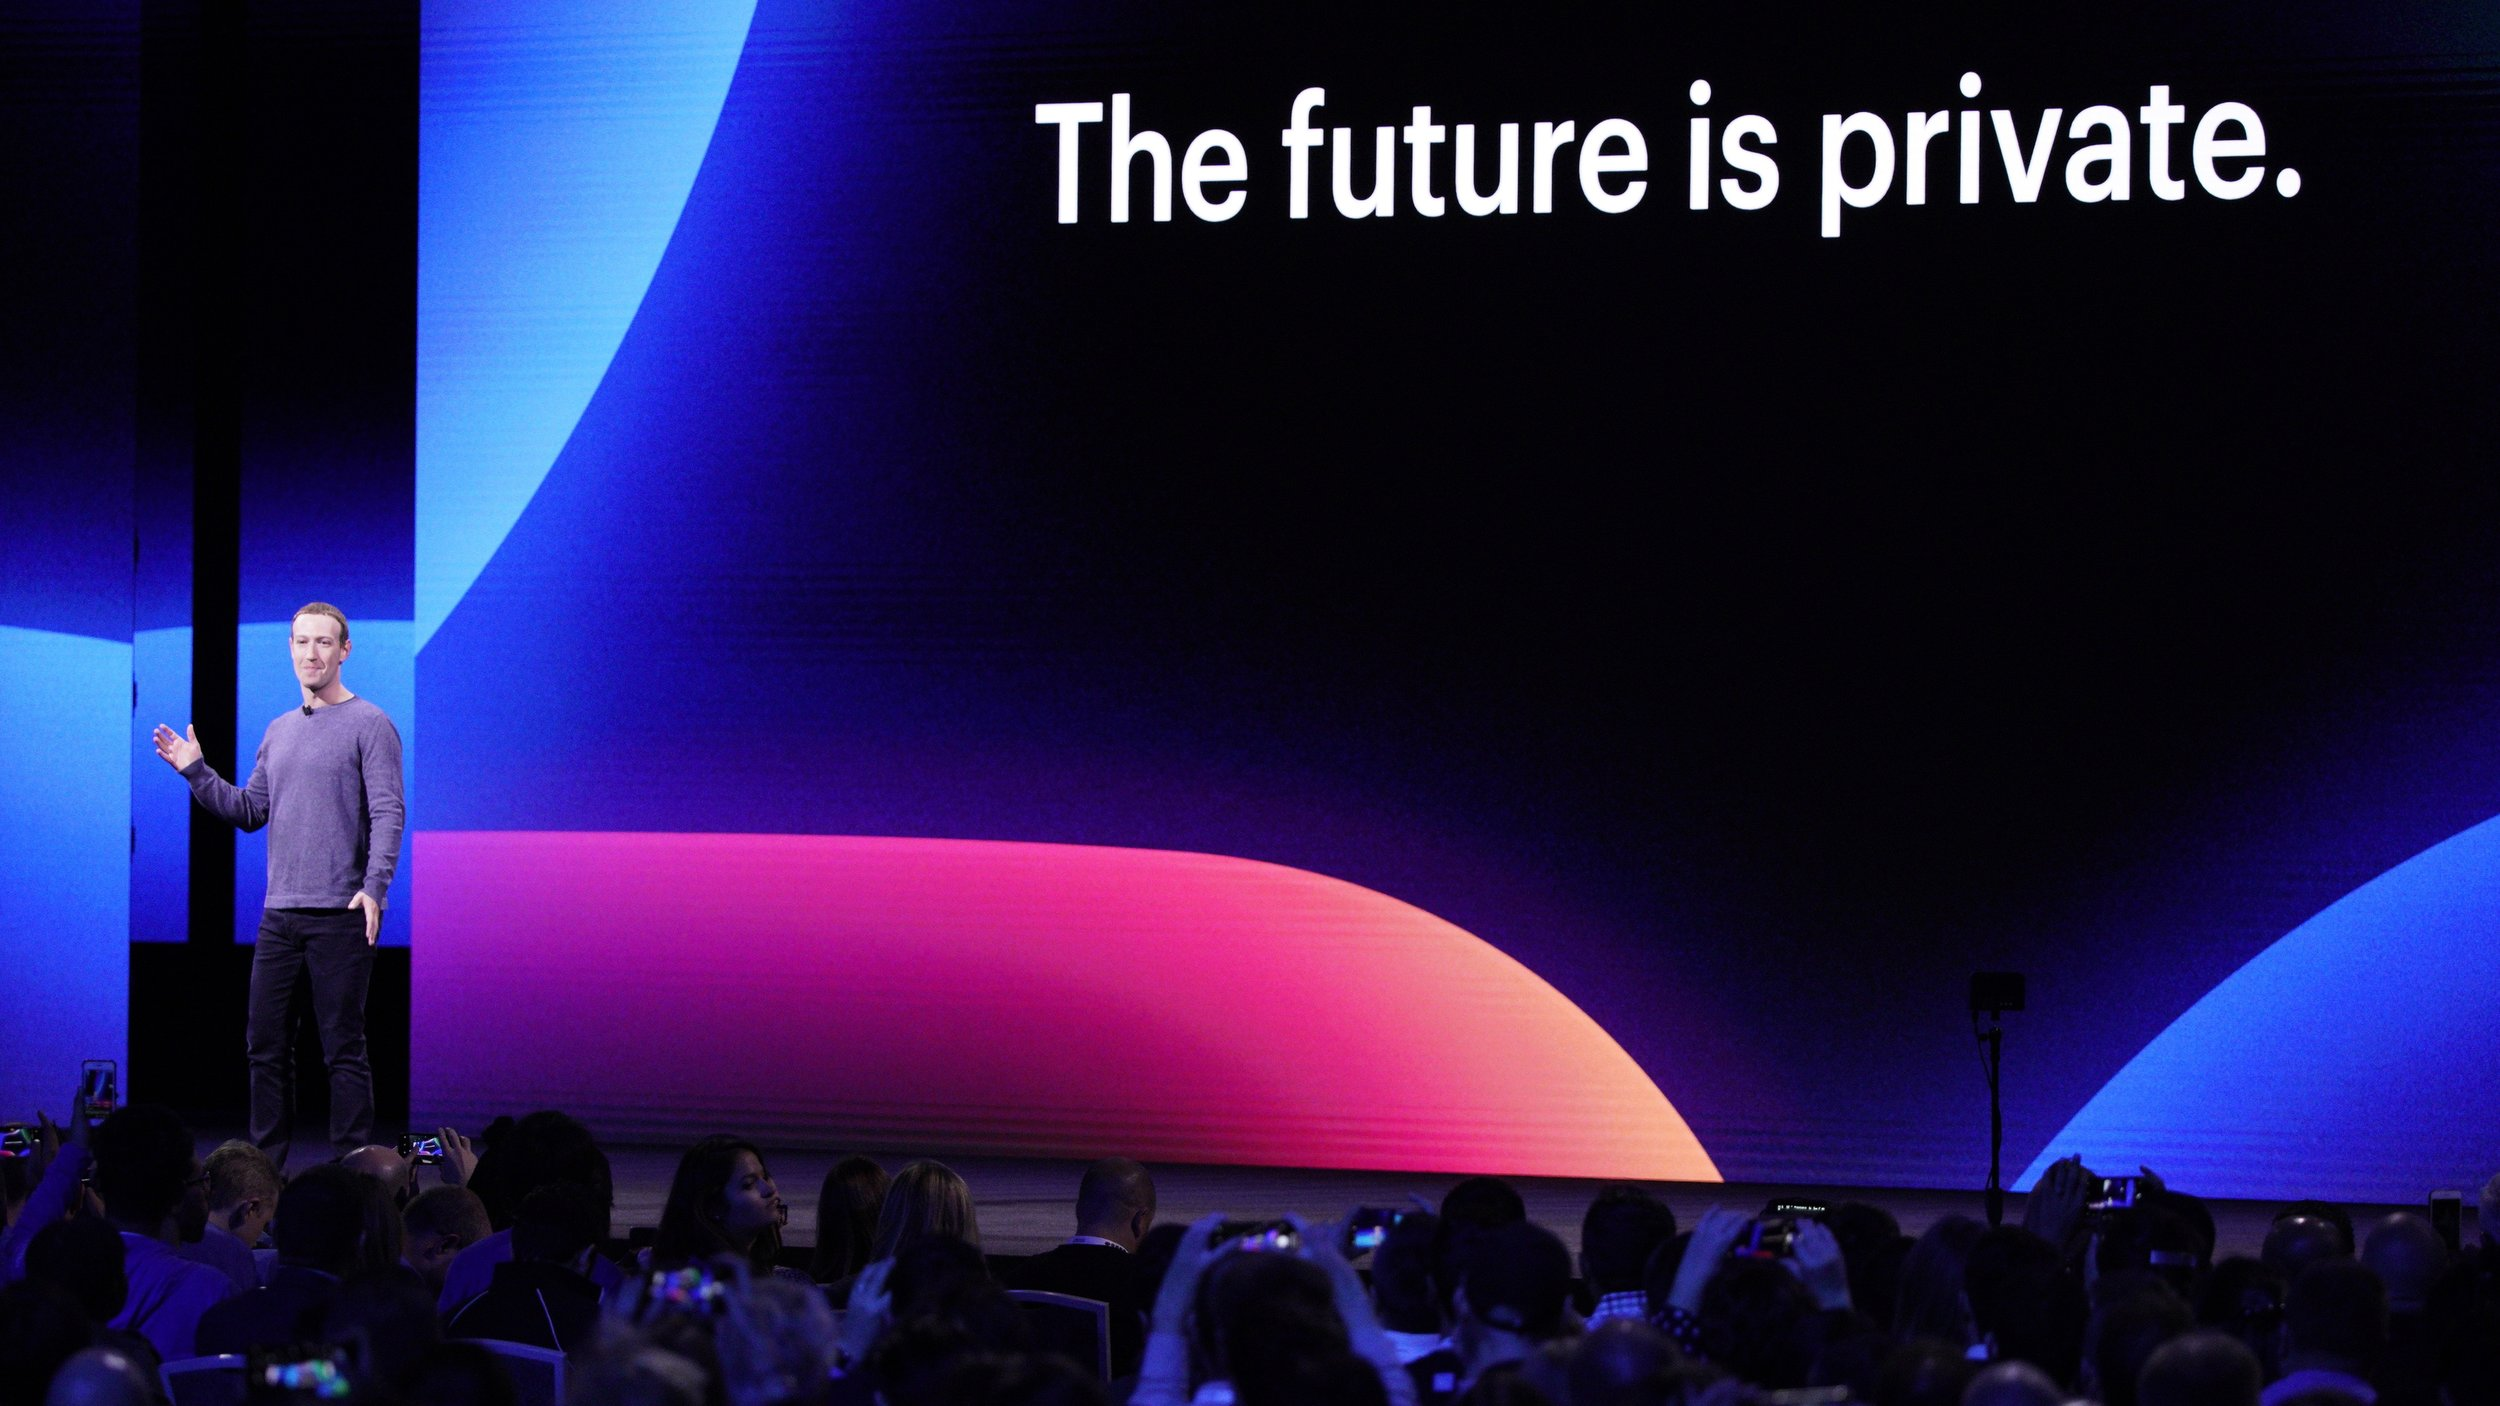 all-the-key-announcements-from-facebooks-f8-conference-136435877547902601-190430202035.jpg